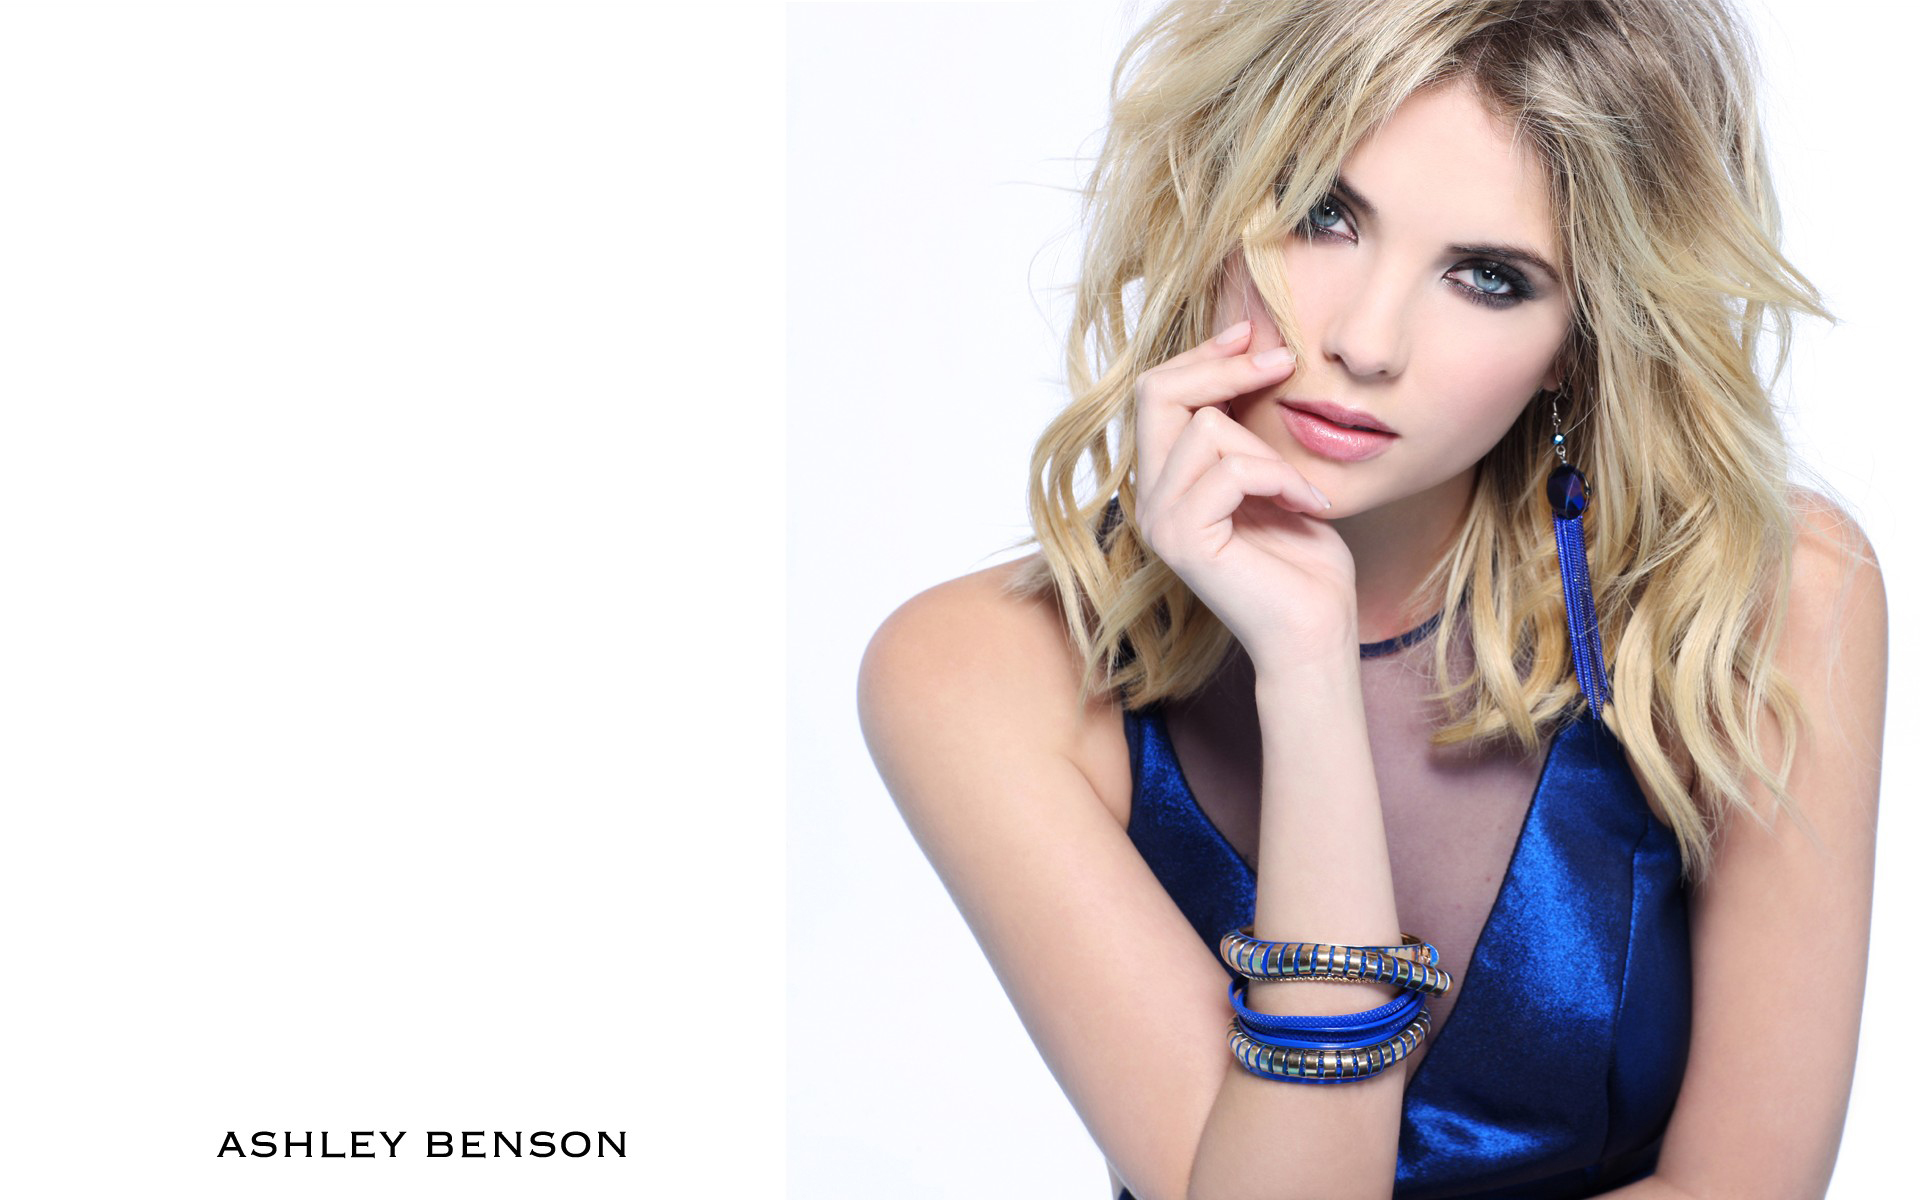 Ashley benson hd Wallpapers Pictures Photos Images 1736